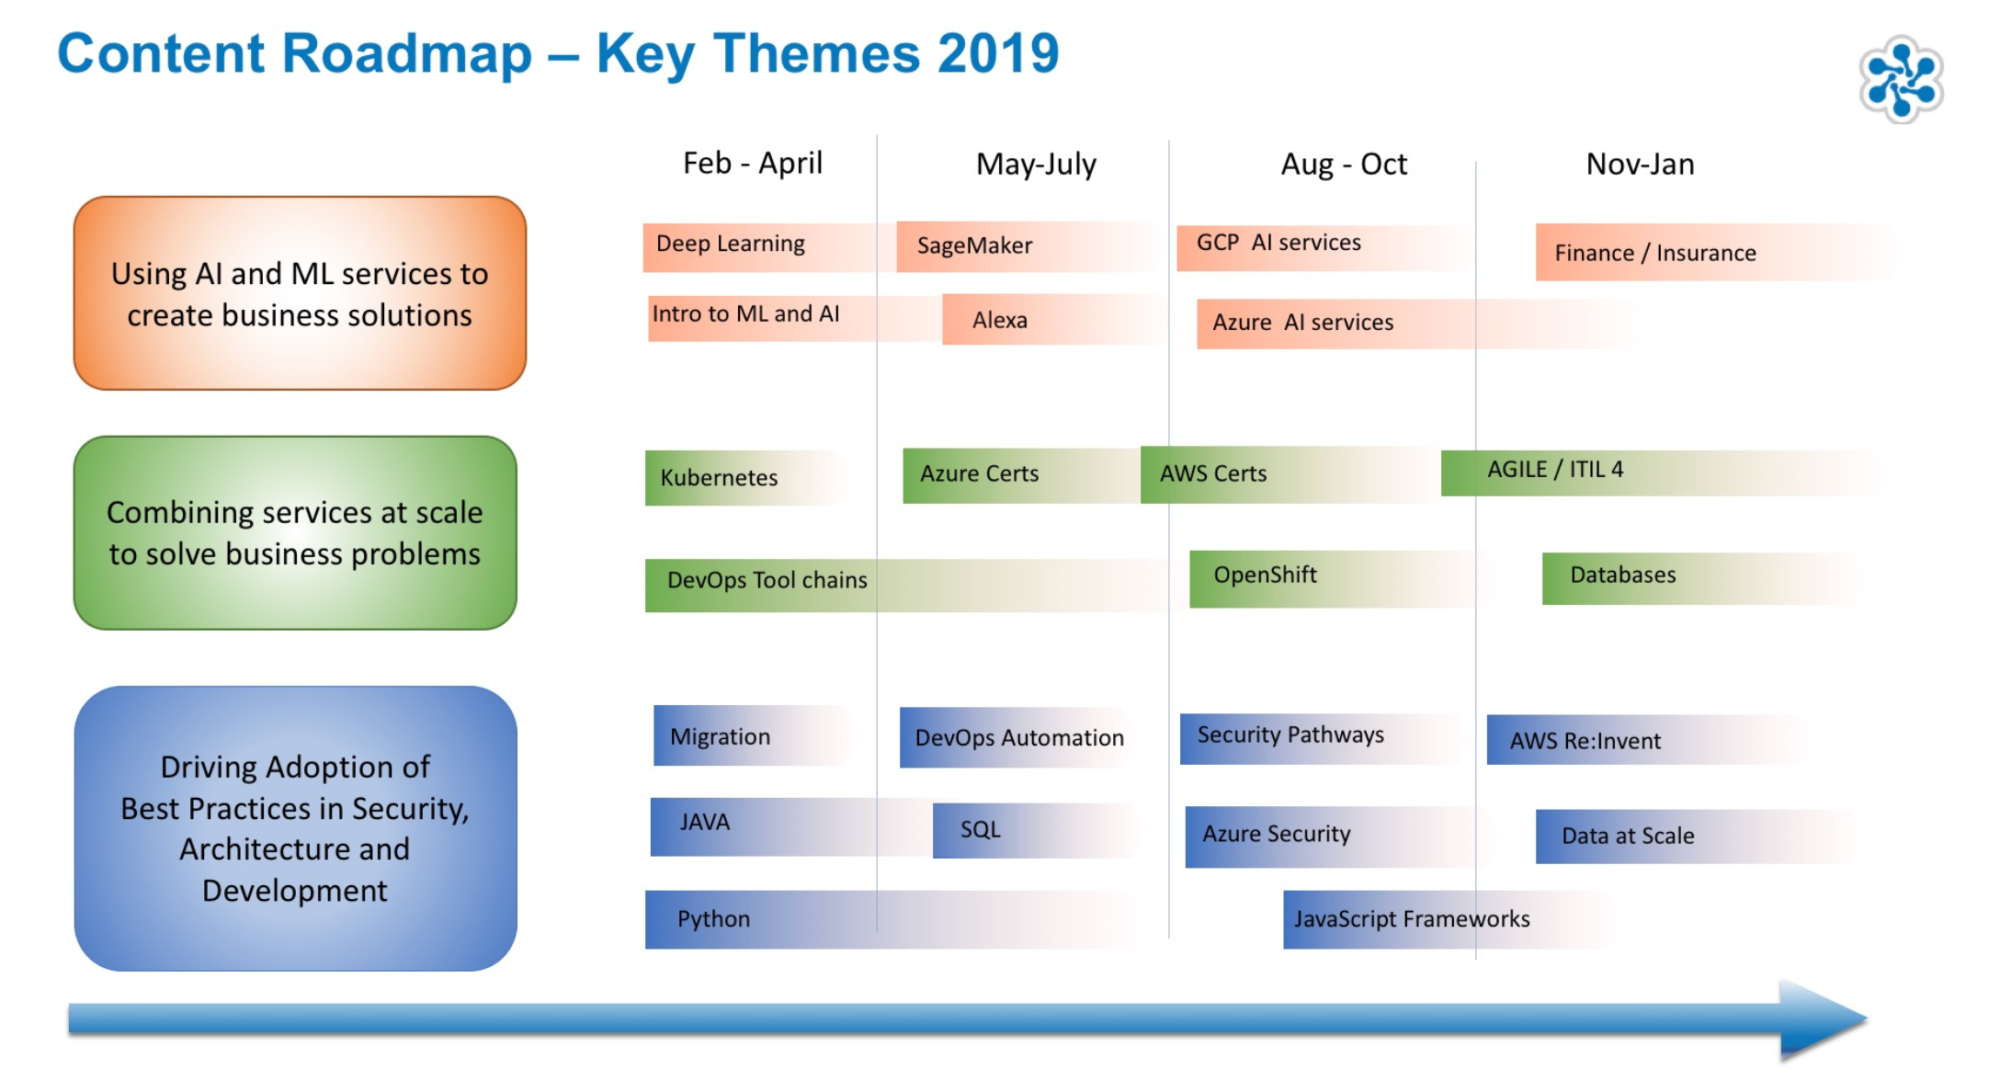 Cloud Academy Content Roadmap